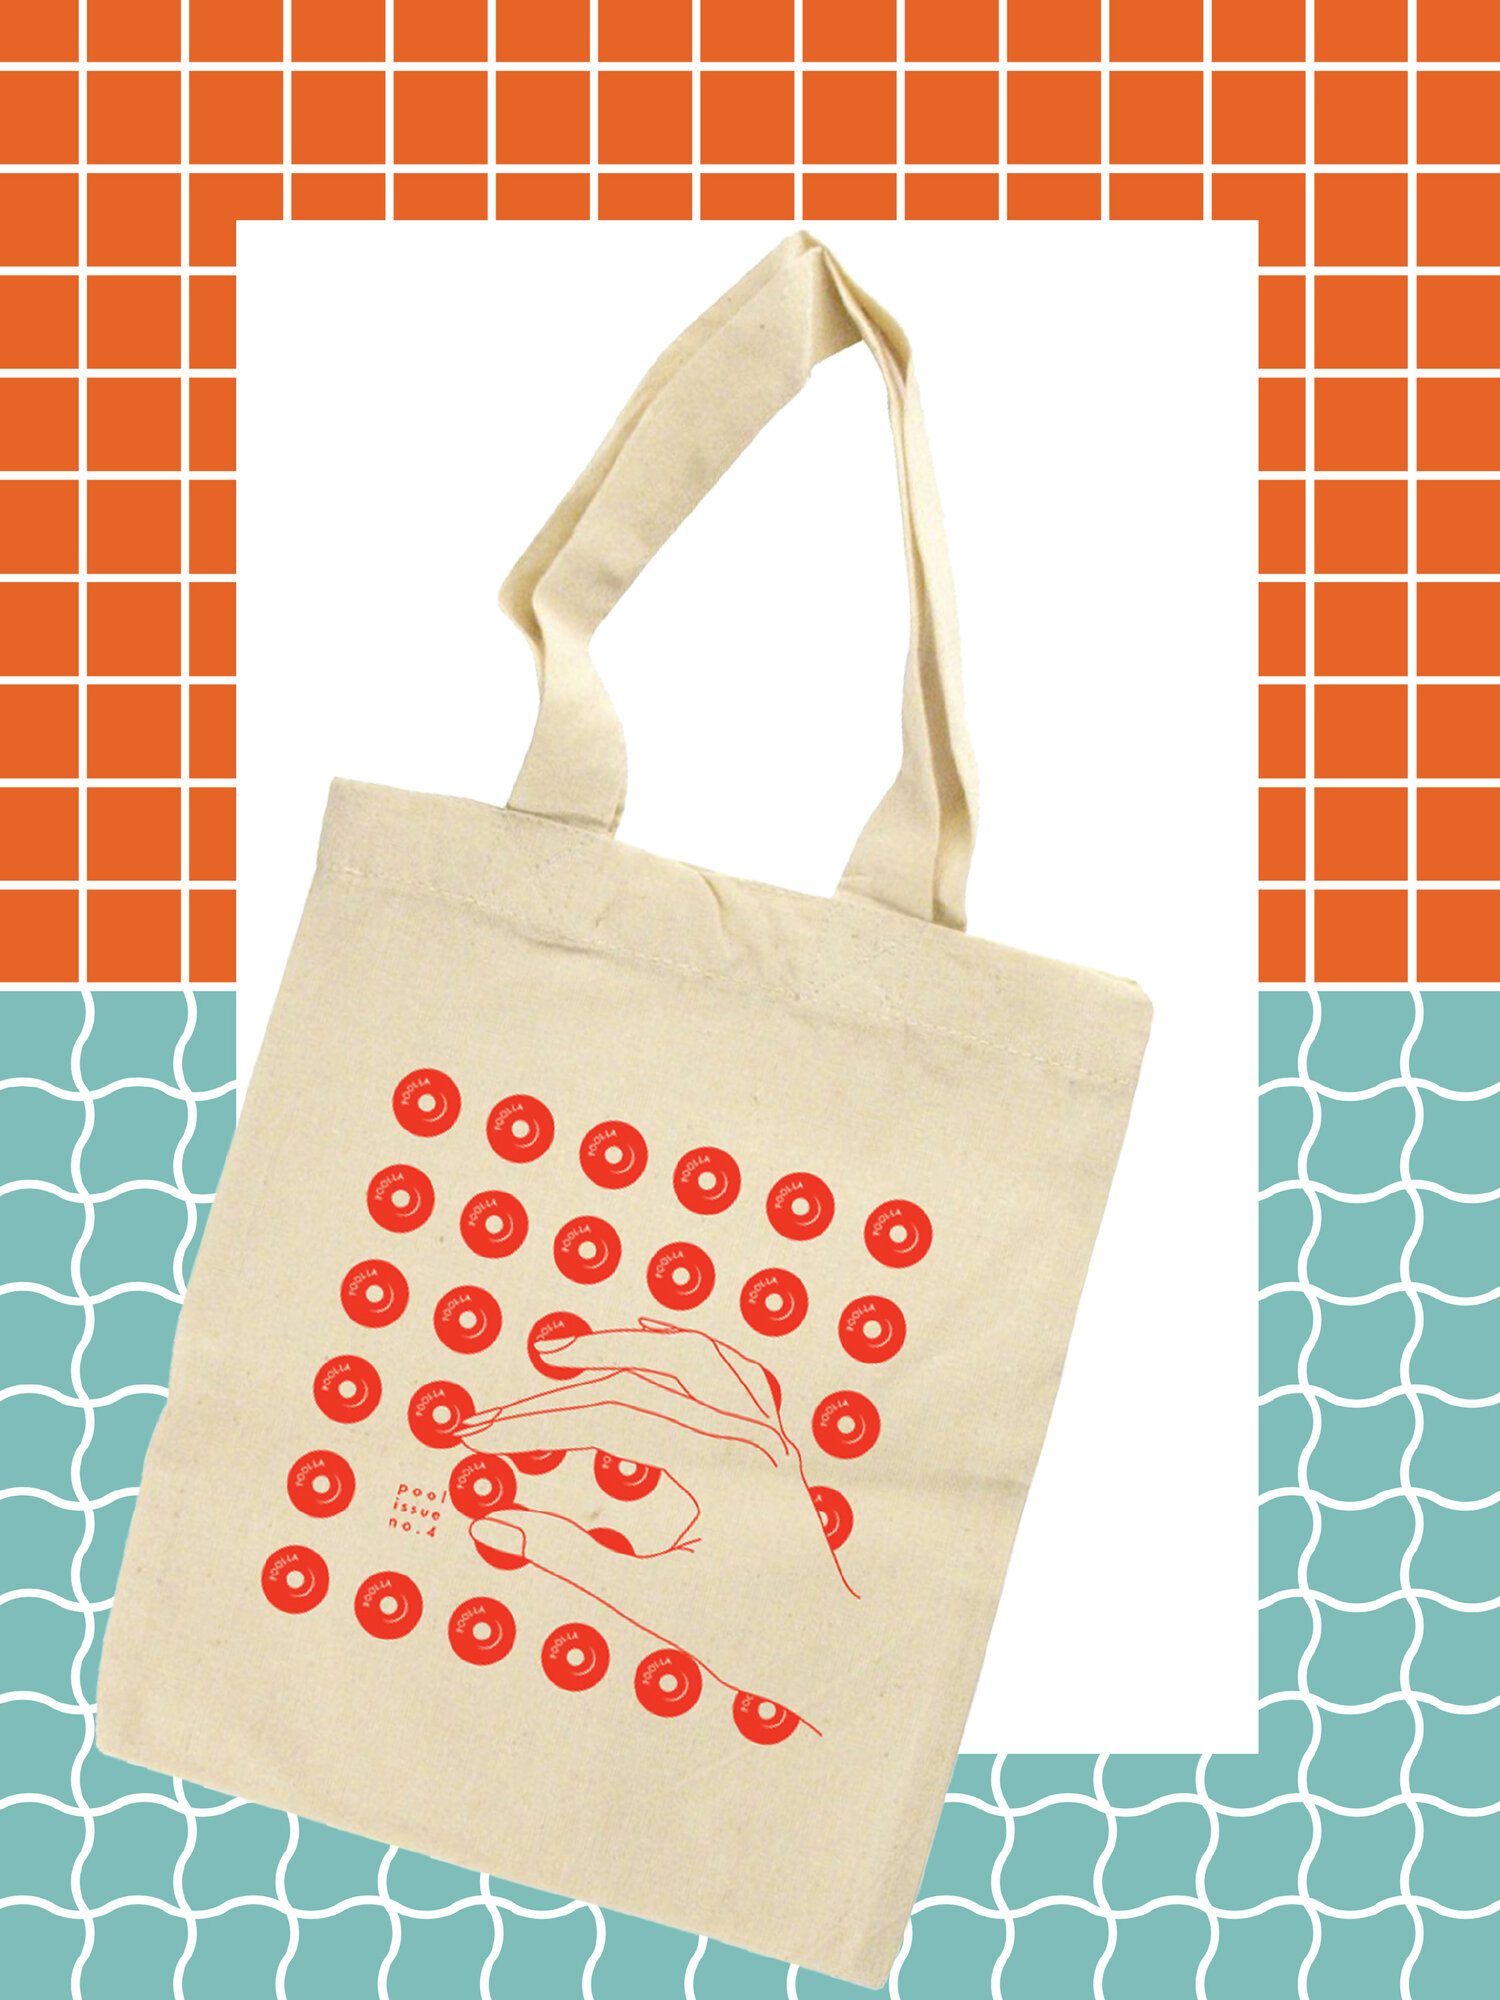 Issue 4 Tote is HERE!